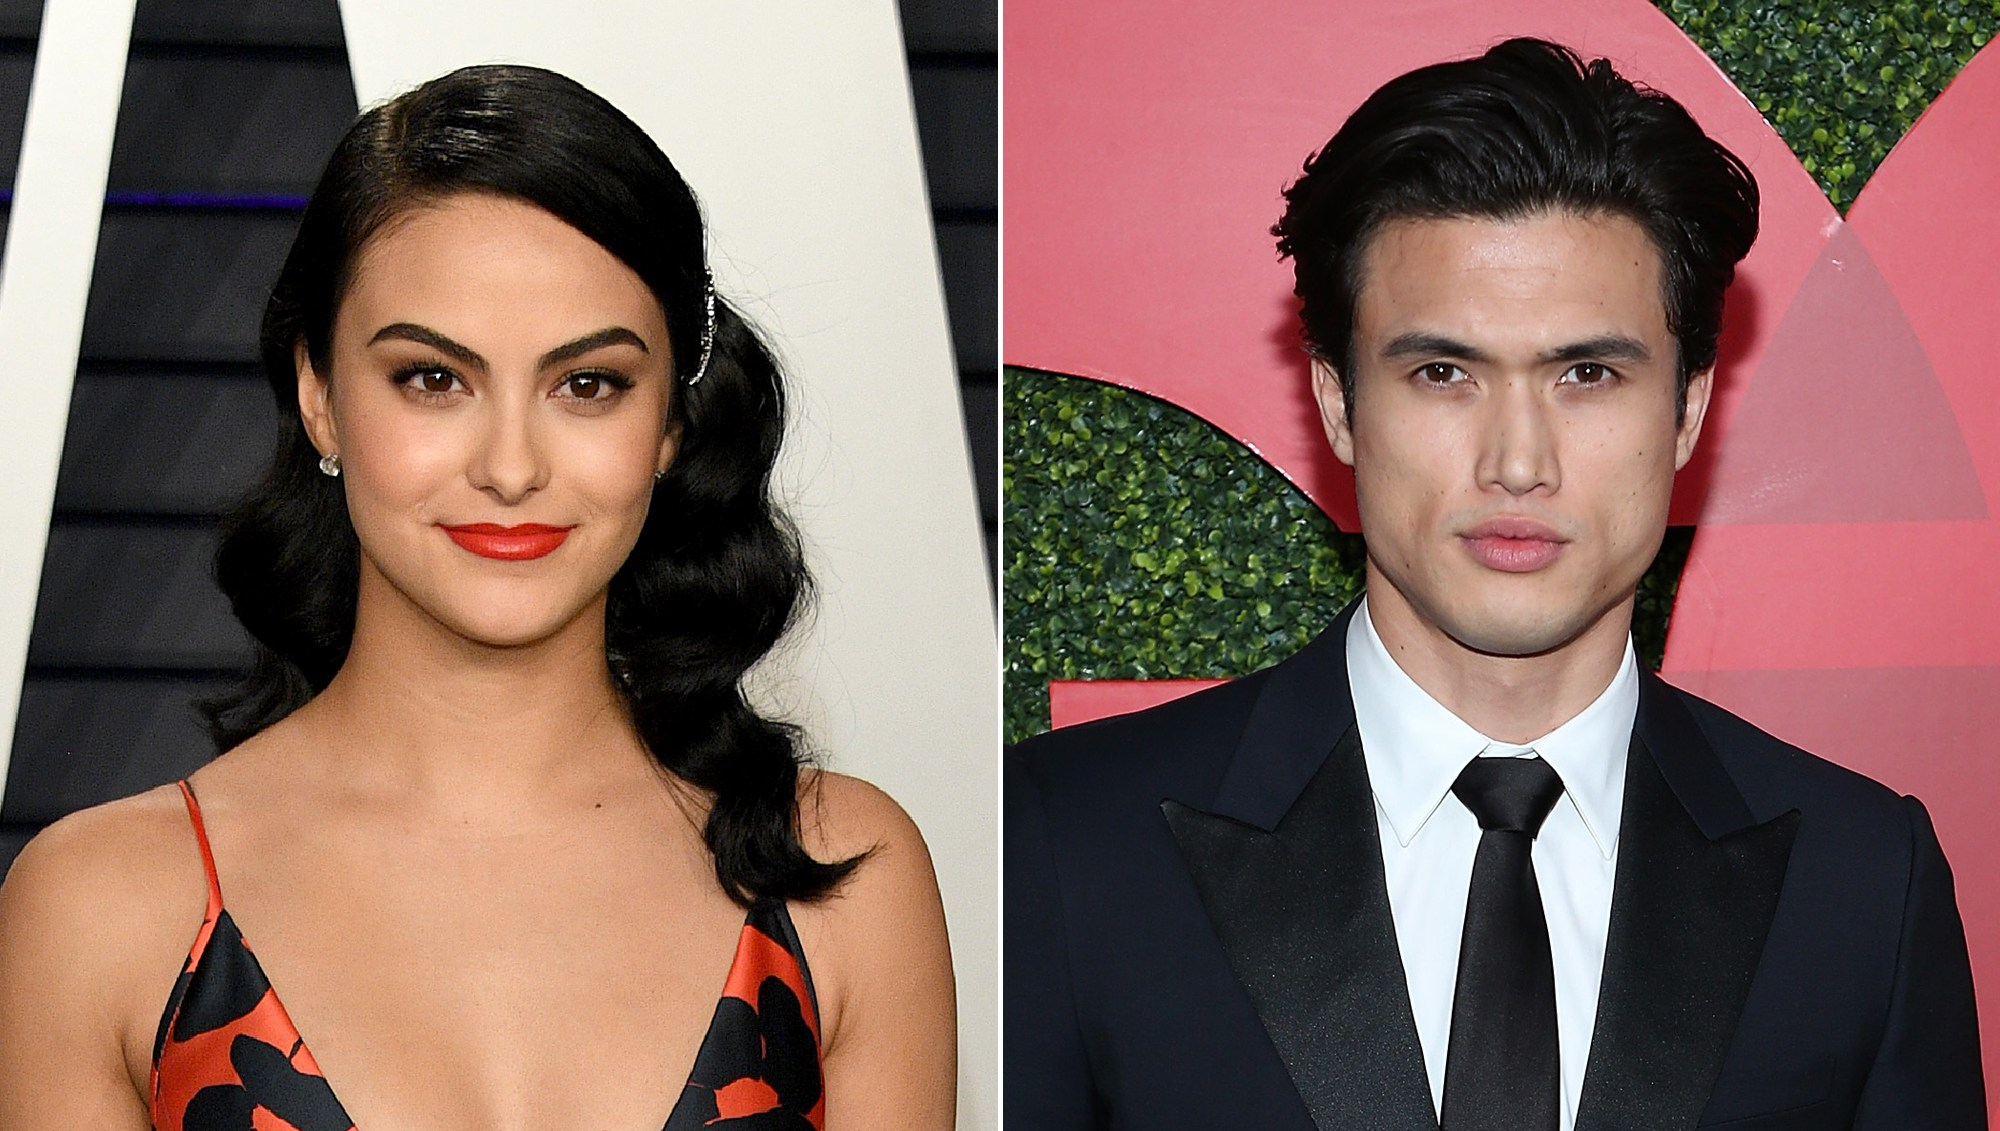 Camila Mendes Doesn't Feel Comfortable Talking About Her Relationship With Charles Melton